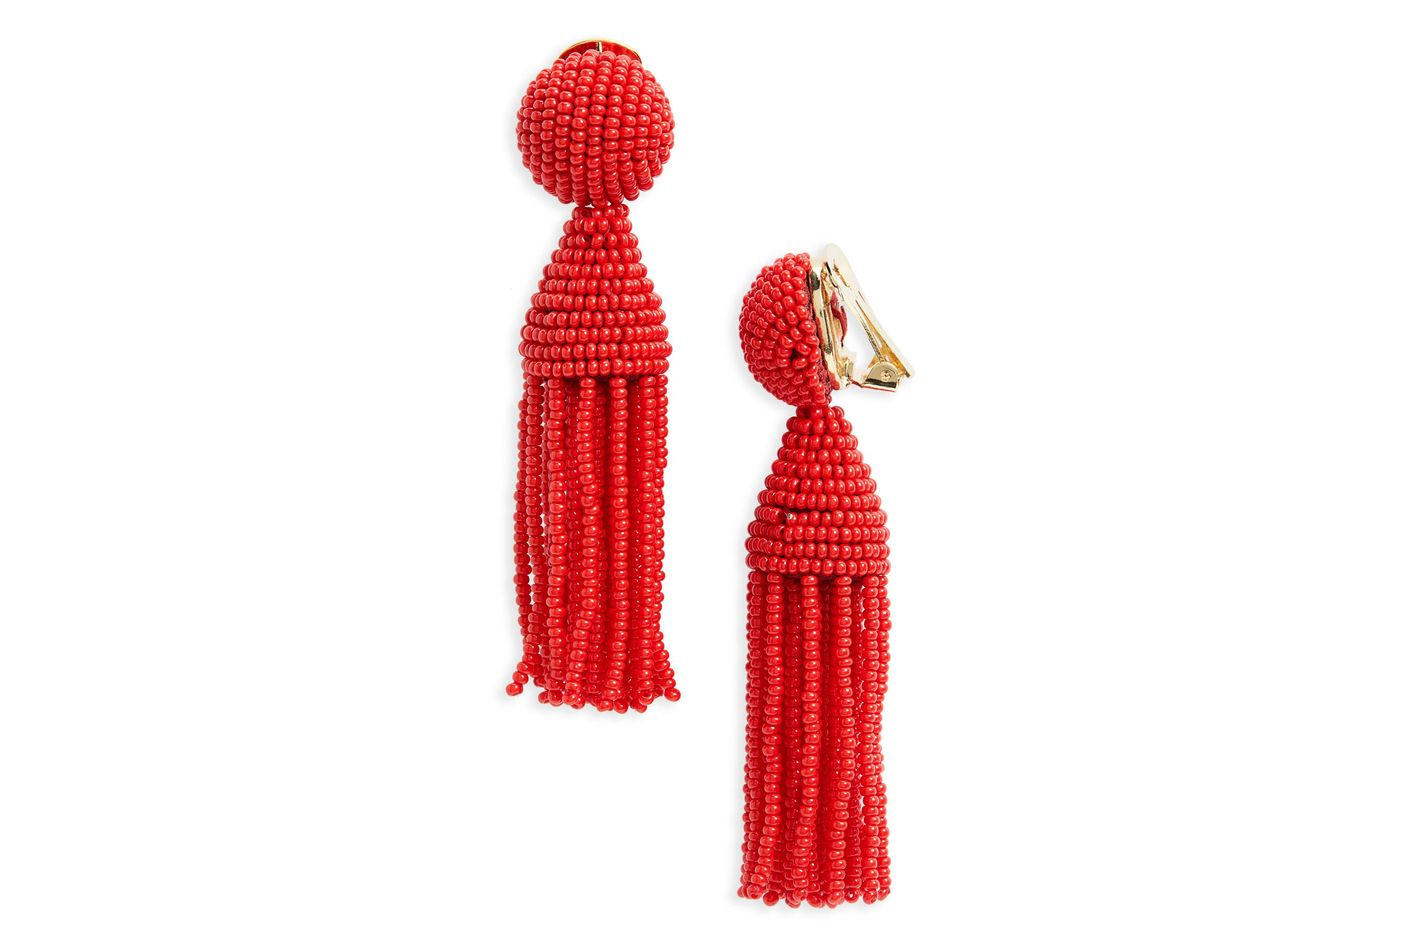 Oscar De La A Tel Drop Earrings At Nordstrom